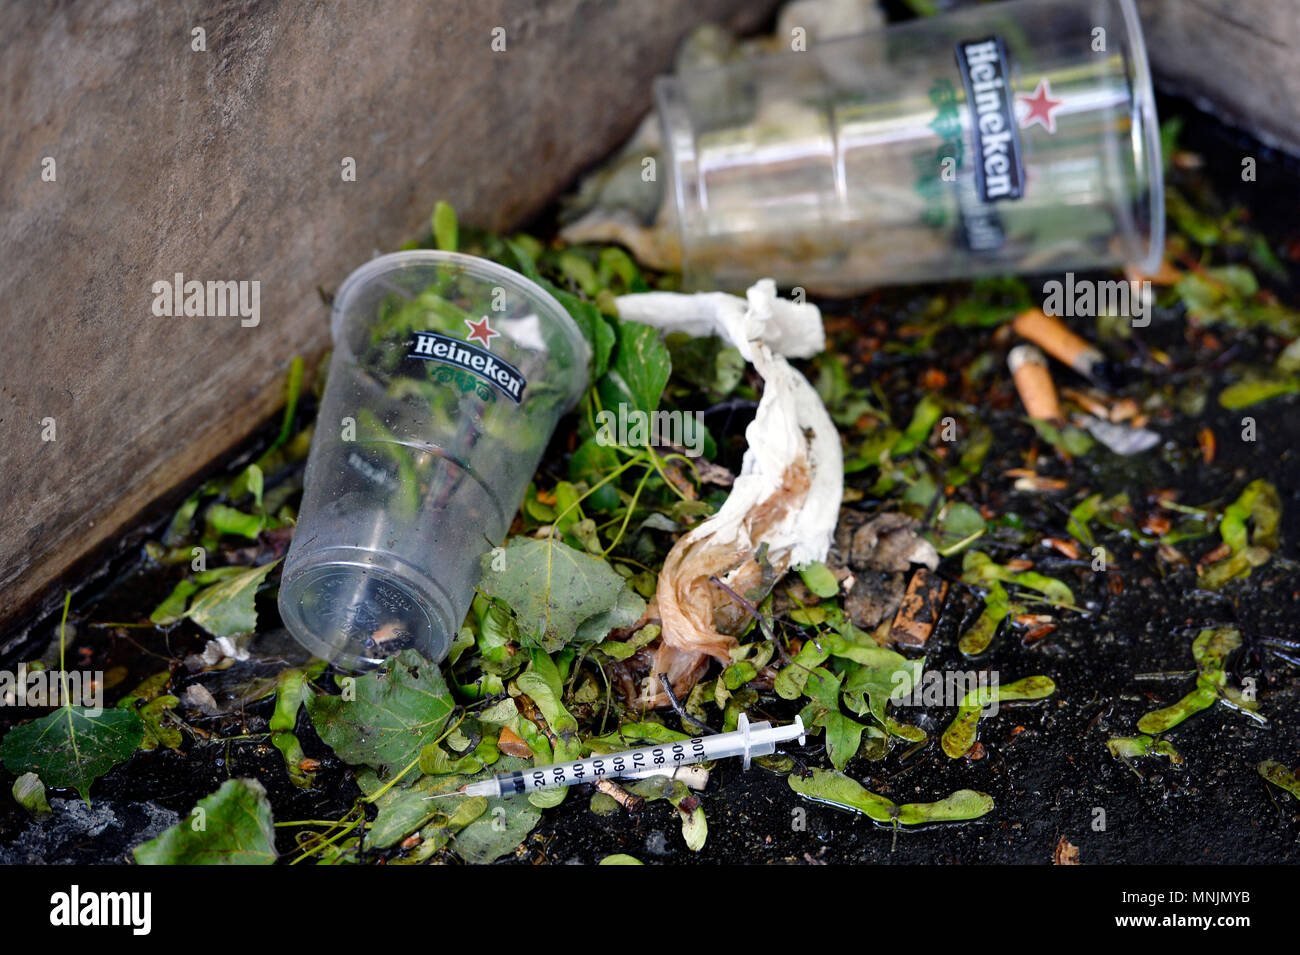 Drug addict syringe thrown on the floor -  The Bassin de la Villette (La Villette Basin) is the largest artificial lake in Paris - Paris 19th - France - Stock Image